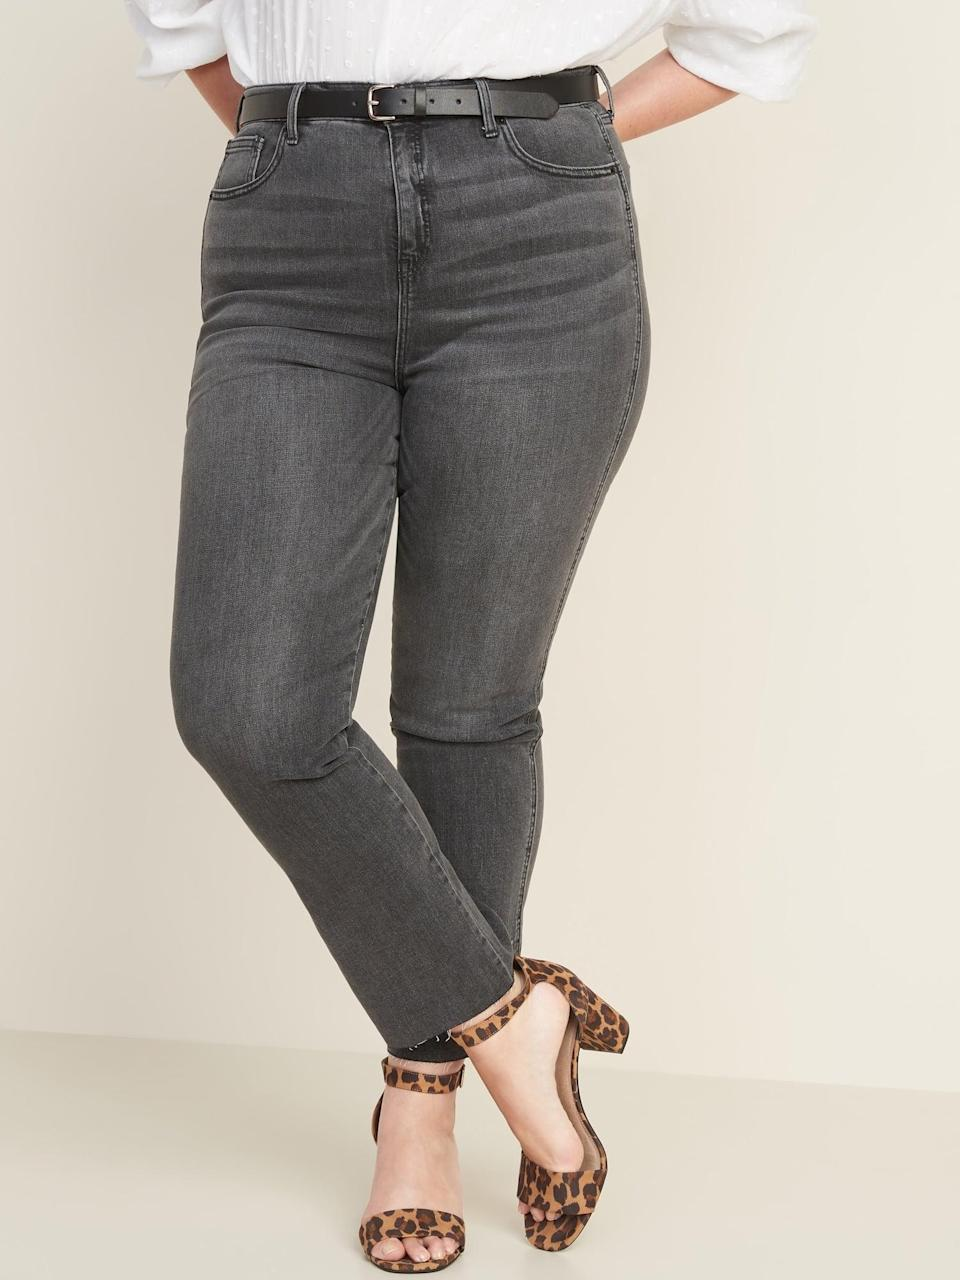 <p>These <span>High-Waisted Raw-Edged Flare Ankle Jeans</span> ($20, originally $40) will go with any top you style them with.</p>